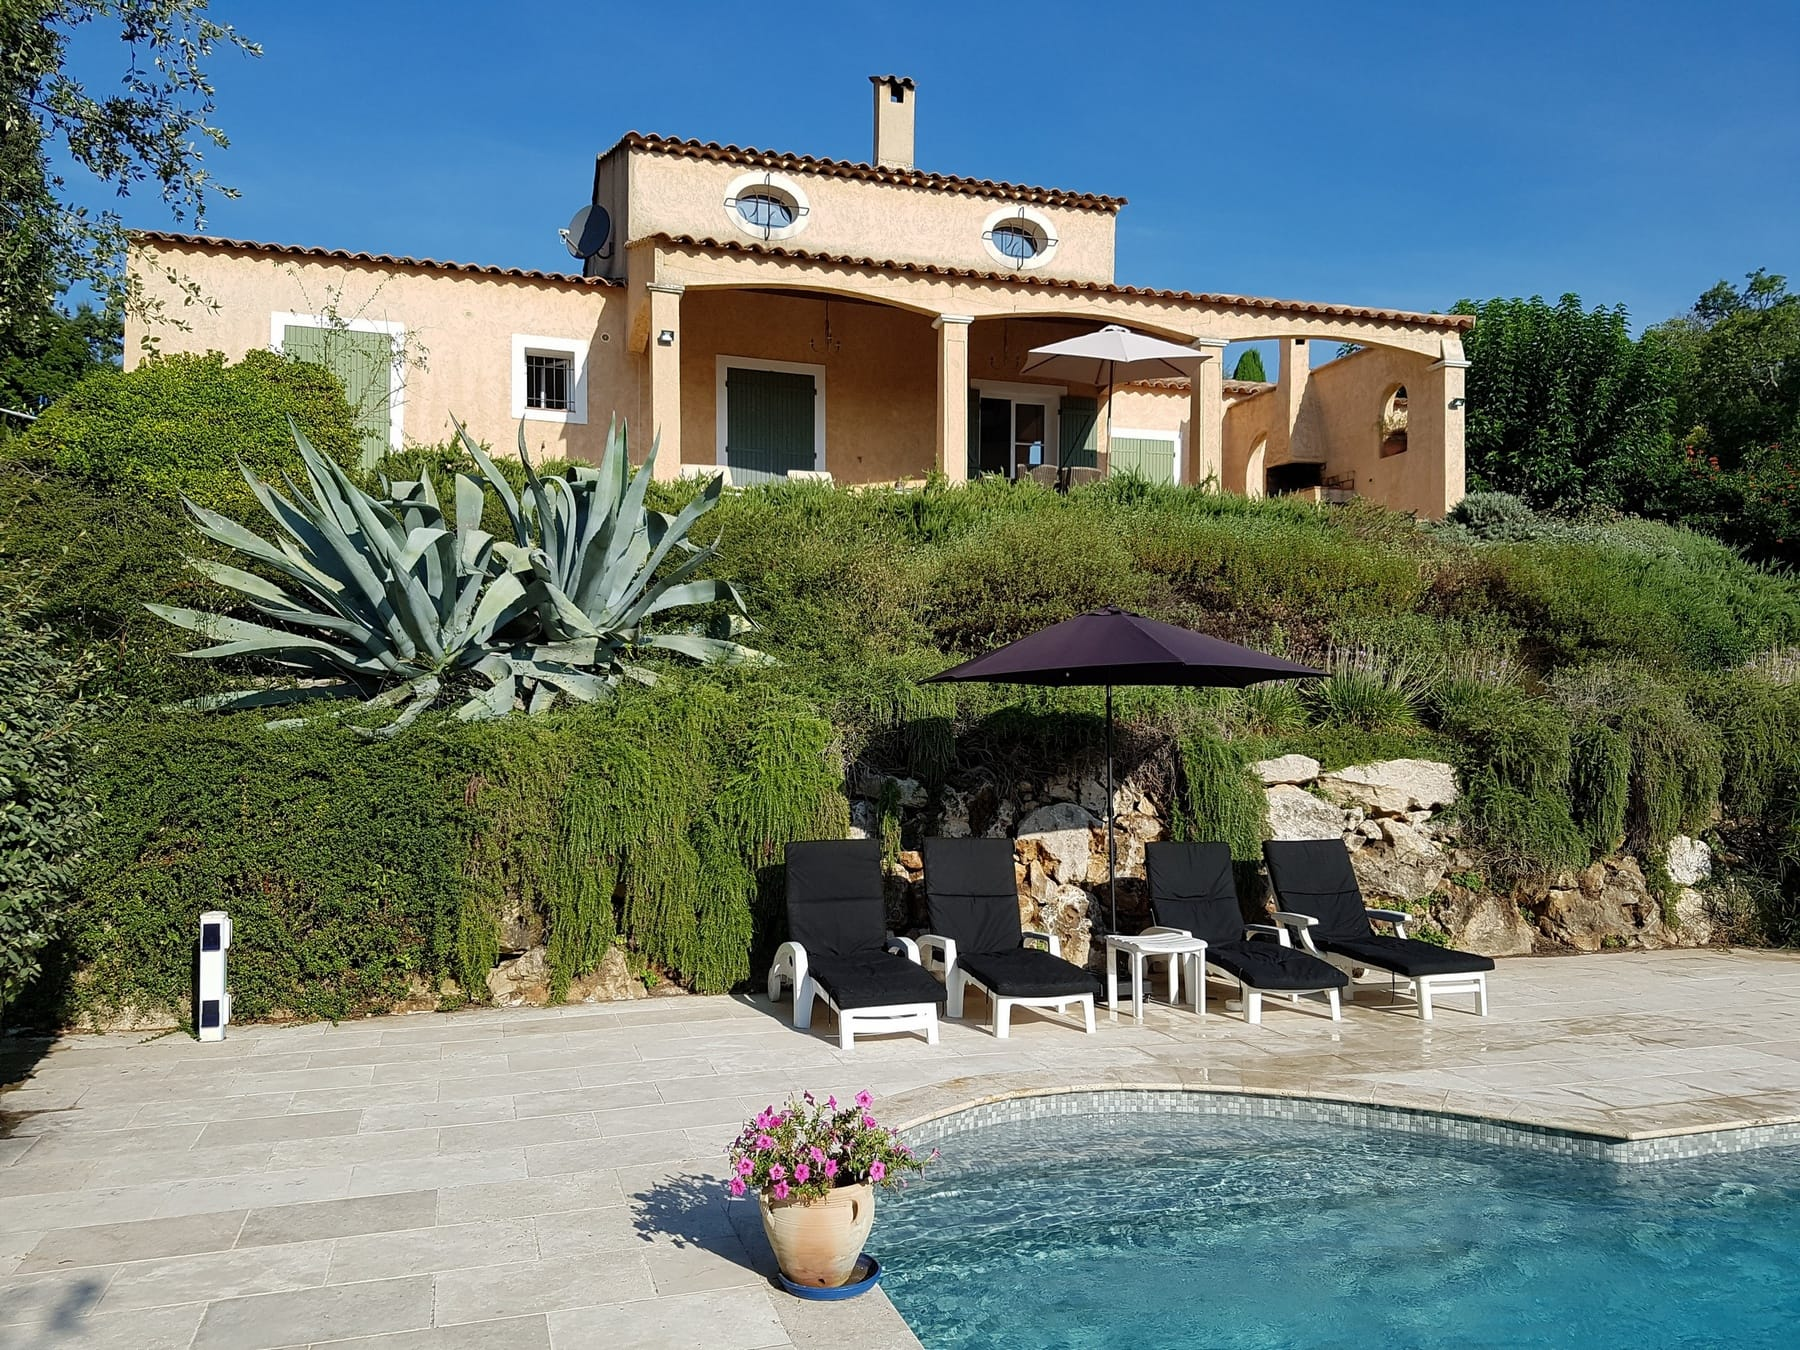 Rent a holiday home with swimming pool Cote d'Azur Villa Valbonne